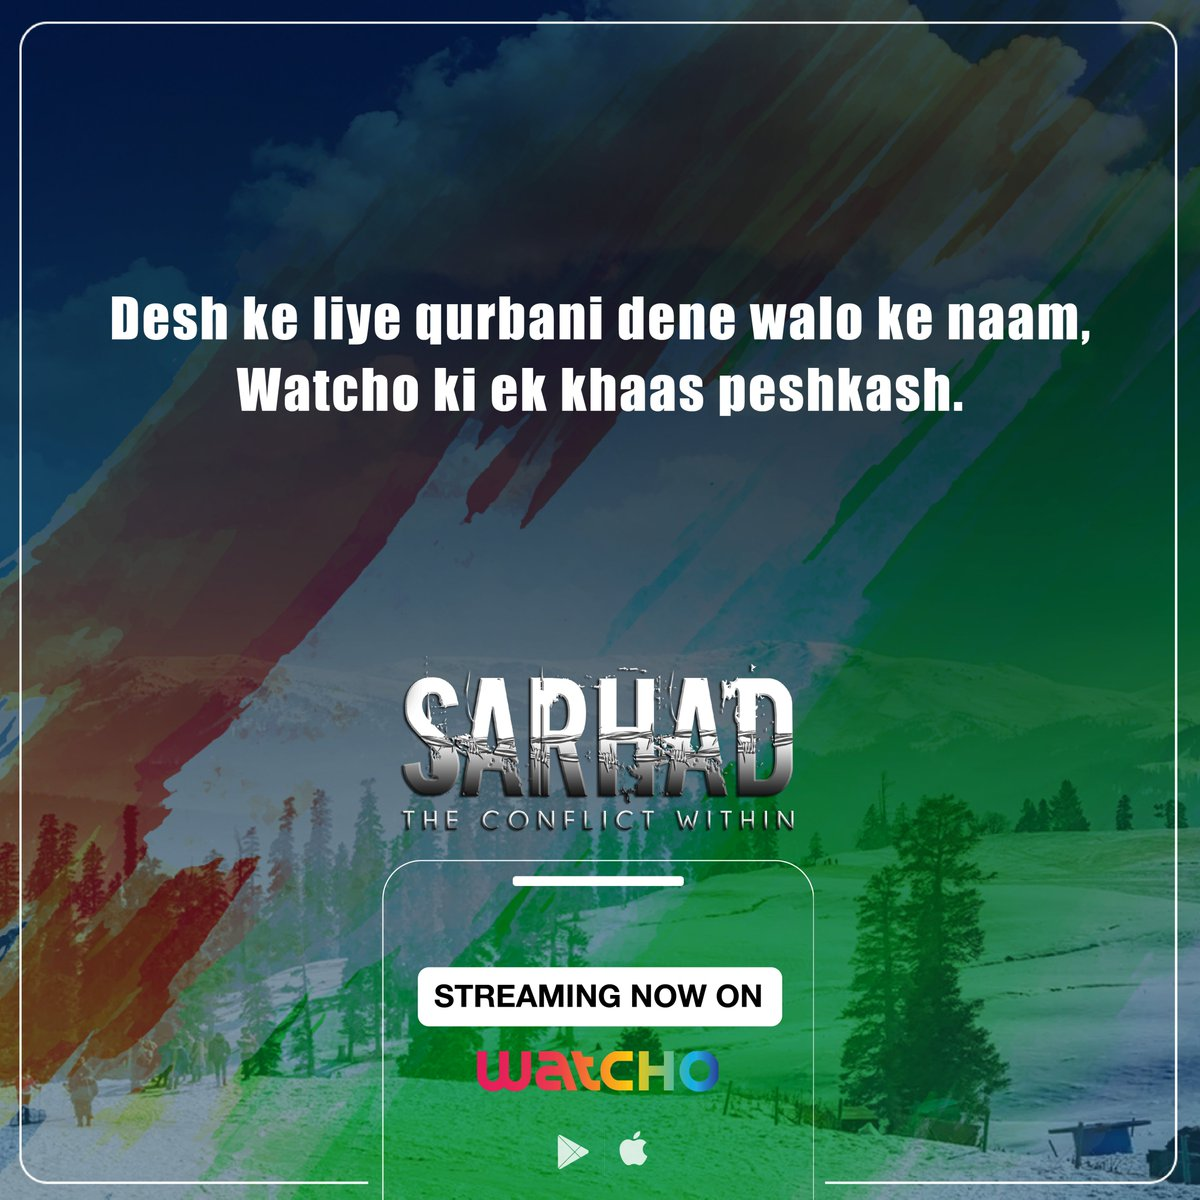 Desh ki sarhado ko jo rakhtein hai surakshit, unhein humara koti-koti pranaam.  Sarhad, streaming now on Watcho.  #LetsWatcho #Watcho #patriotism  #MustWatch  #HappyRepublicDay #Nationalism  #love #patriots #national #ProudIndian   @DishTV_India @officiald2h @PerceptPictures